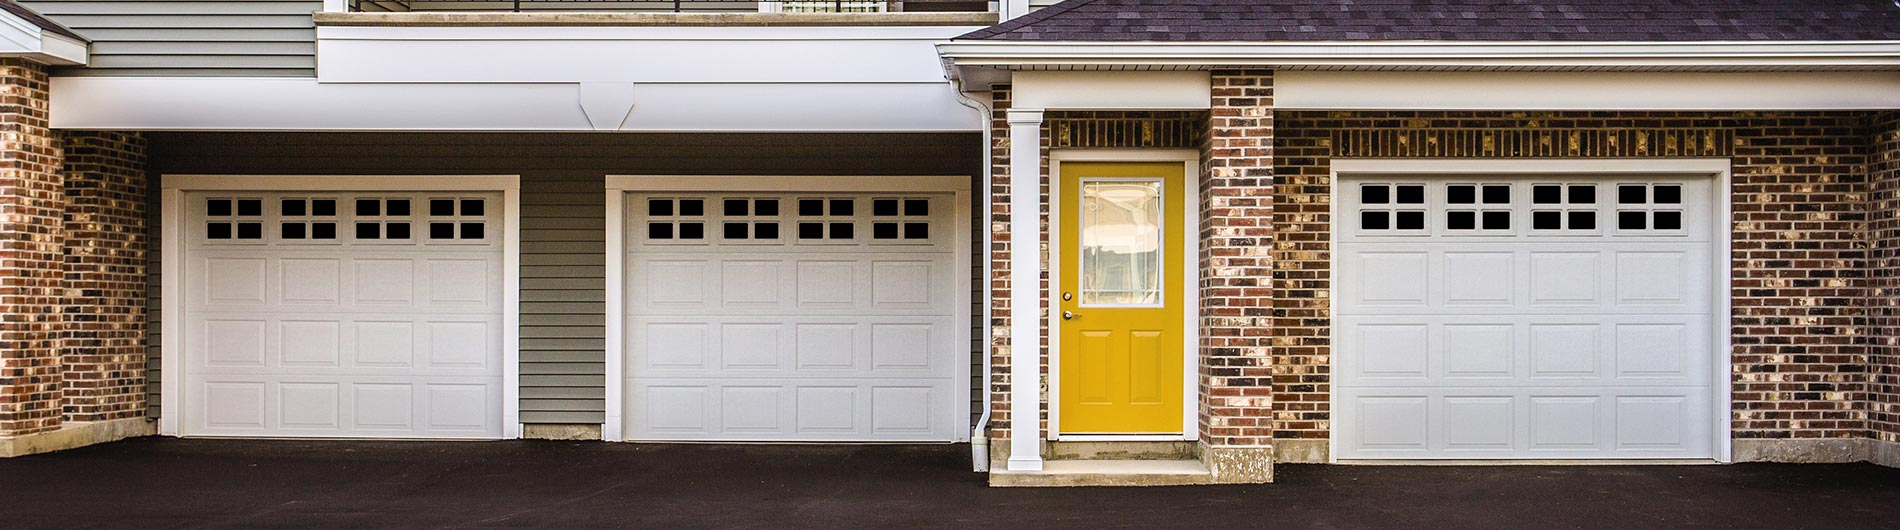 9100-9605-Steel-Garage-Door-Colonial-White-StockbridgeI ... & Classic Steel Garage Doors 9100 9605